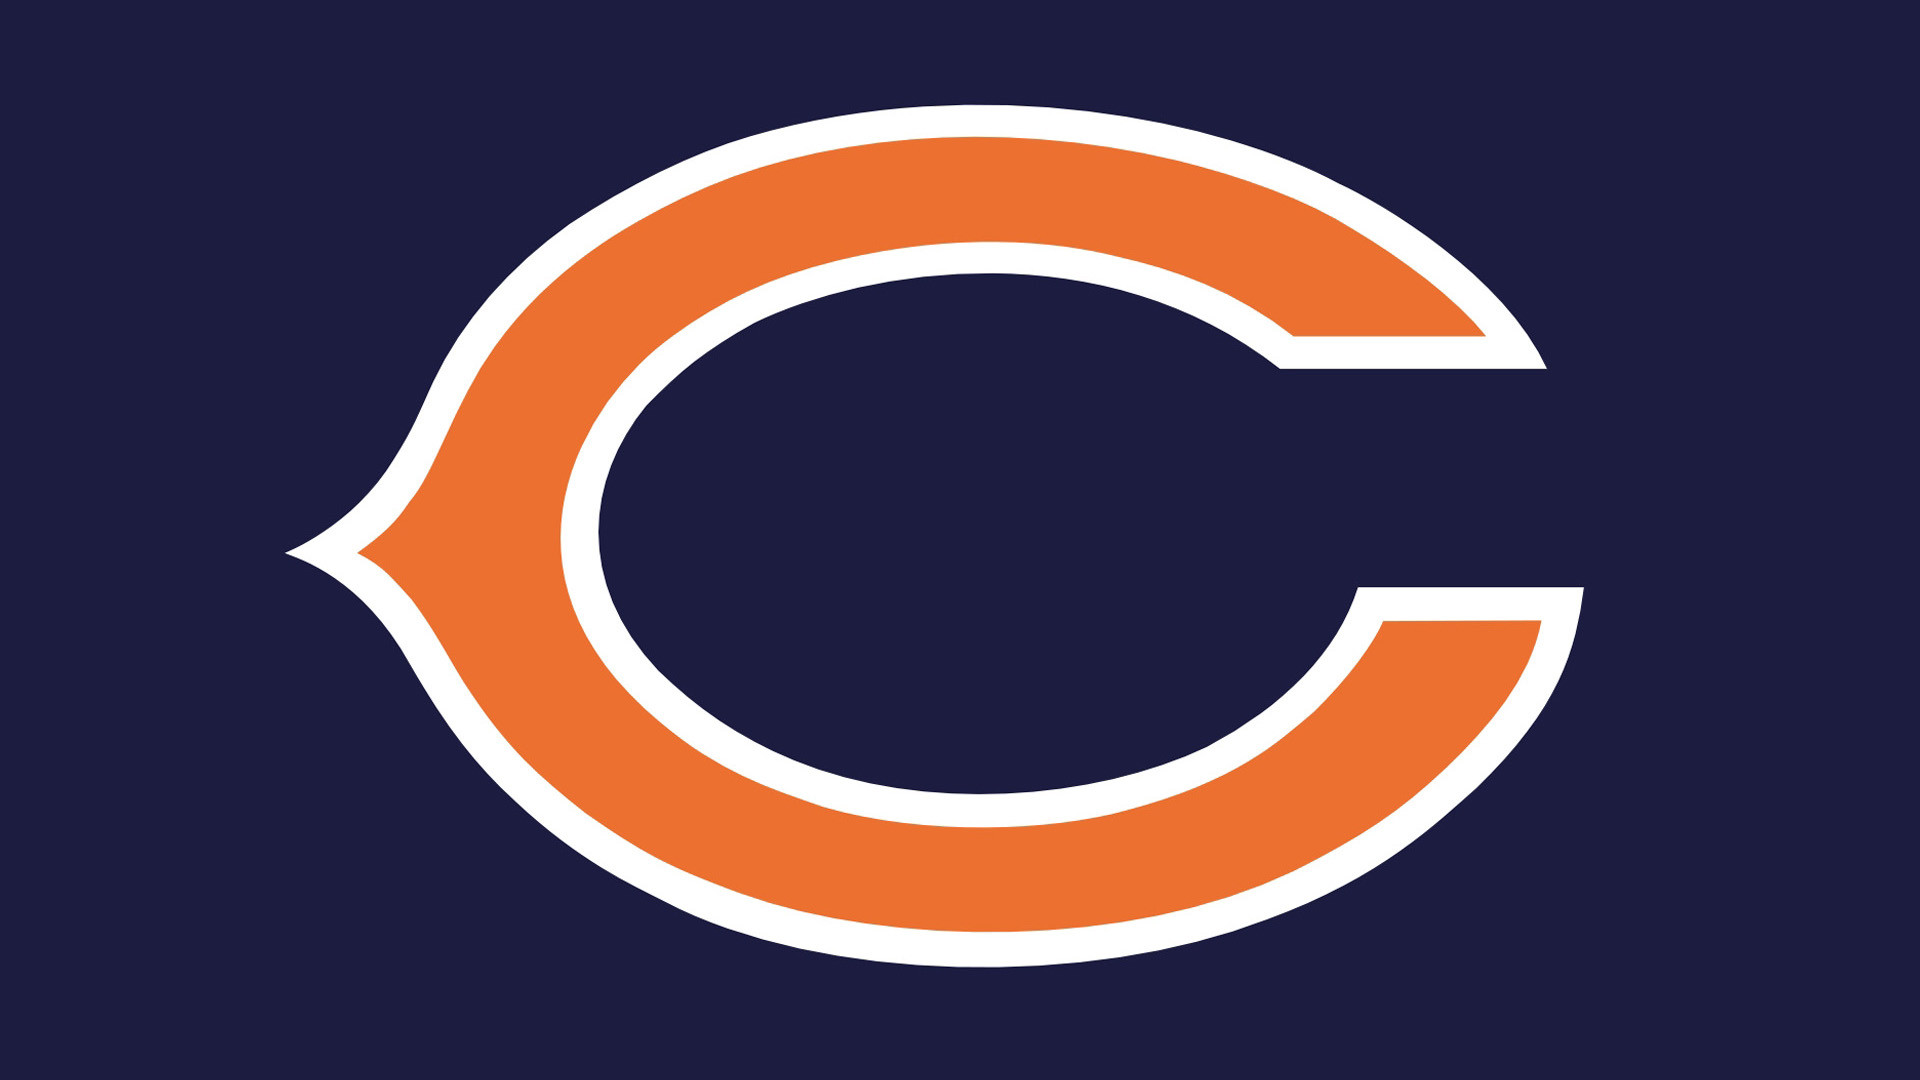 1920x1080 Chicago Bears Logo Wallpaper | WallpaperUniversity.com :: Chicago Bears Logo  – NFL Background